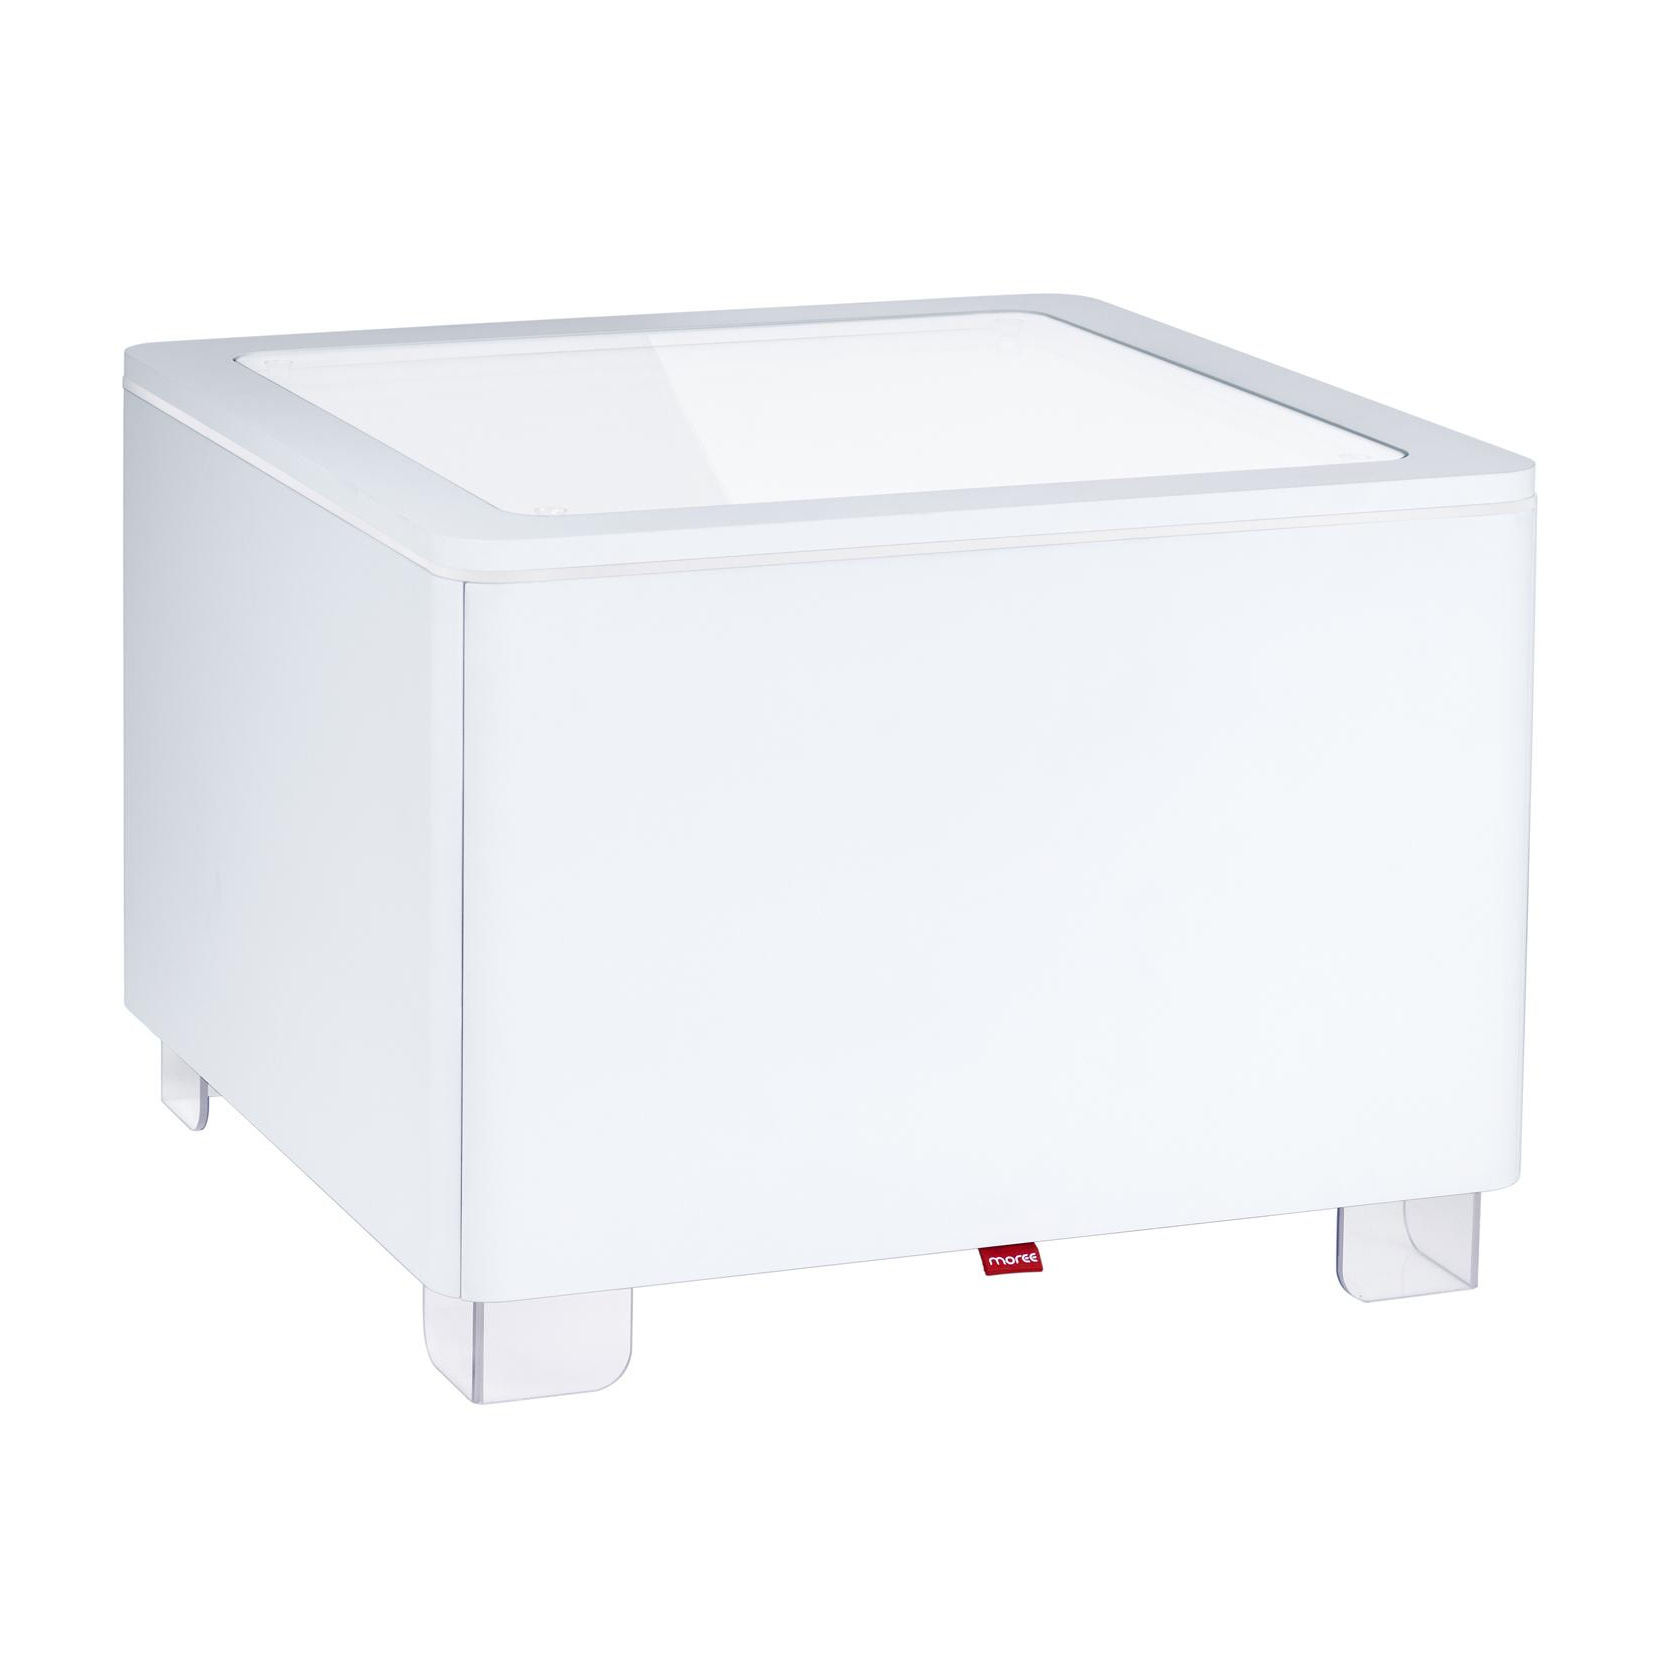 Moree - Ora LED Table d'appoint - blanc/with remote control/Multicolour LED/L x B x H: 60 x60 x 45cm/3m cable